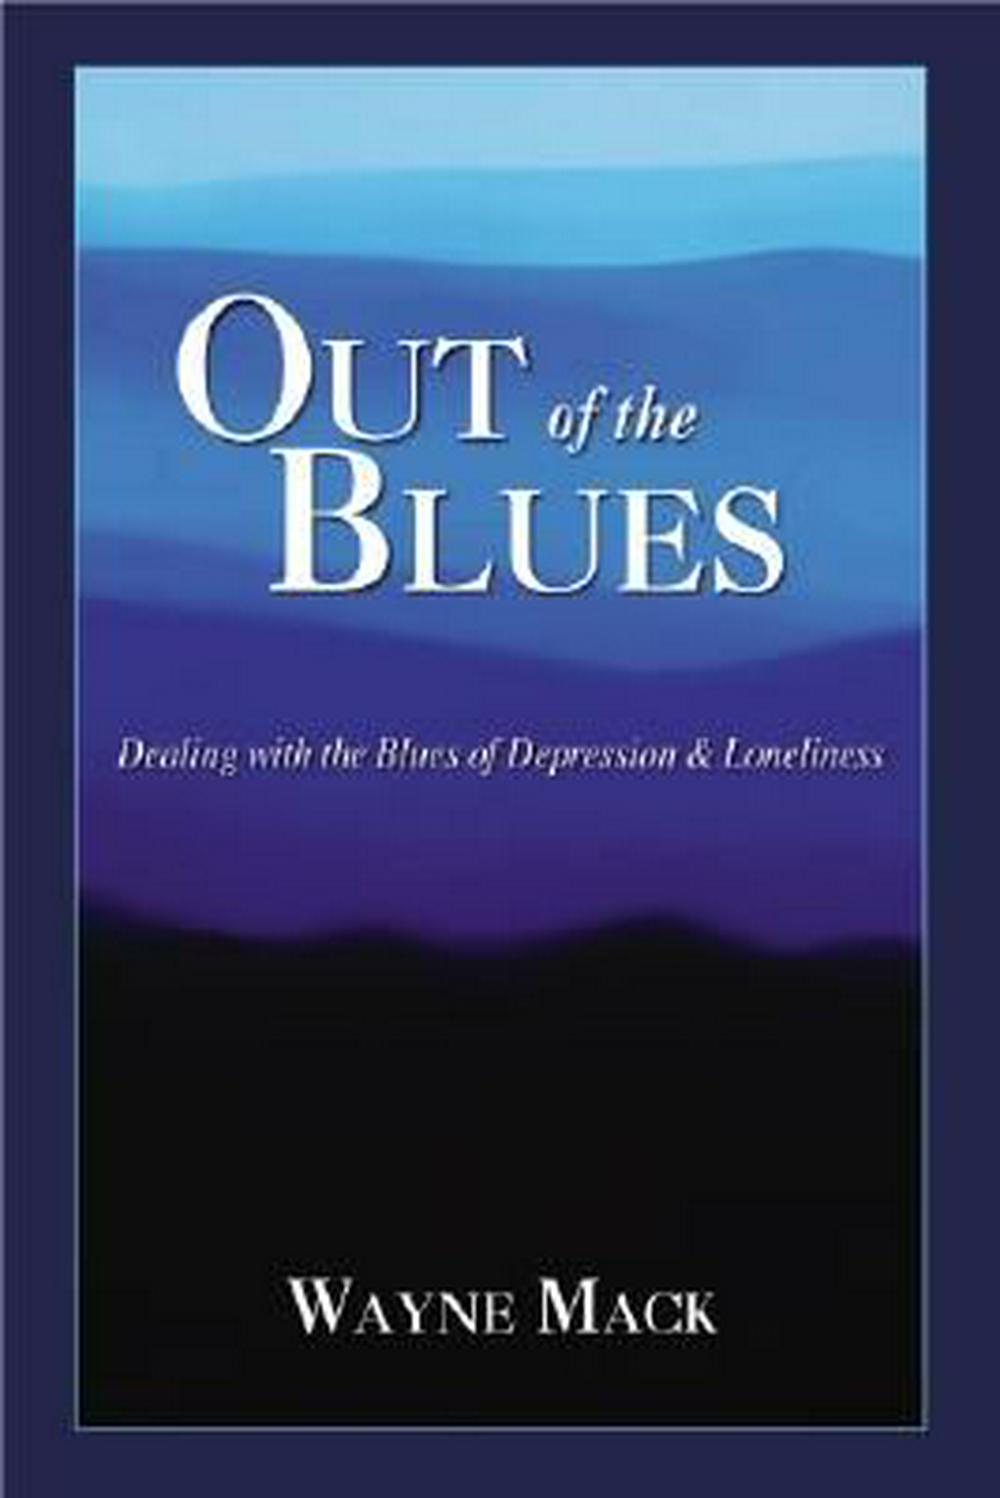 Out of the Blues: Dealing with the Blues of Depression and Loneliness by Wayne Mack, ISBN: 9781885904591